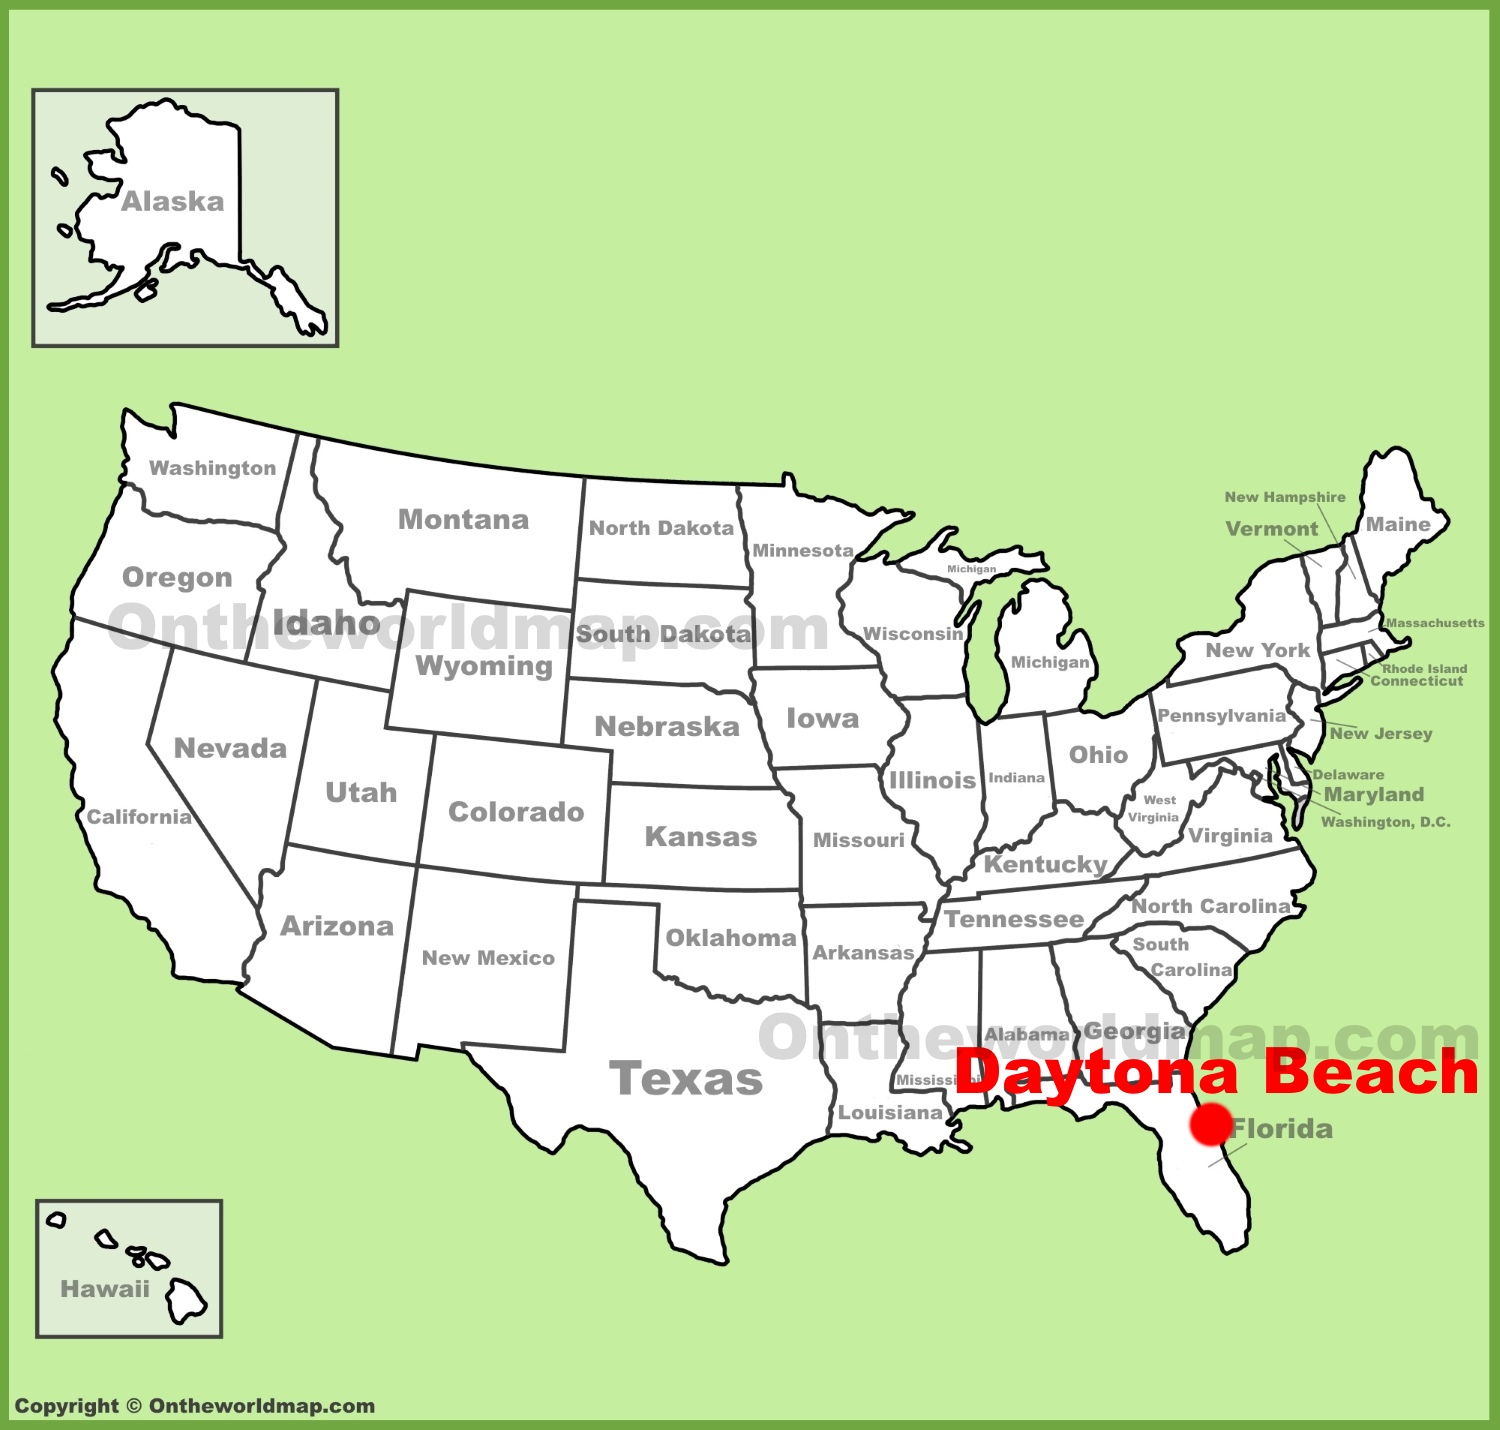 Map Of Florida Showing Daytona Beach.Daytona Beach Location On The U S Map